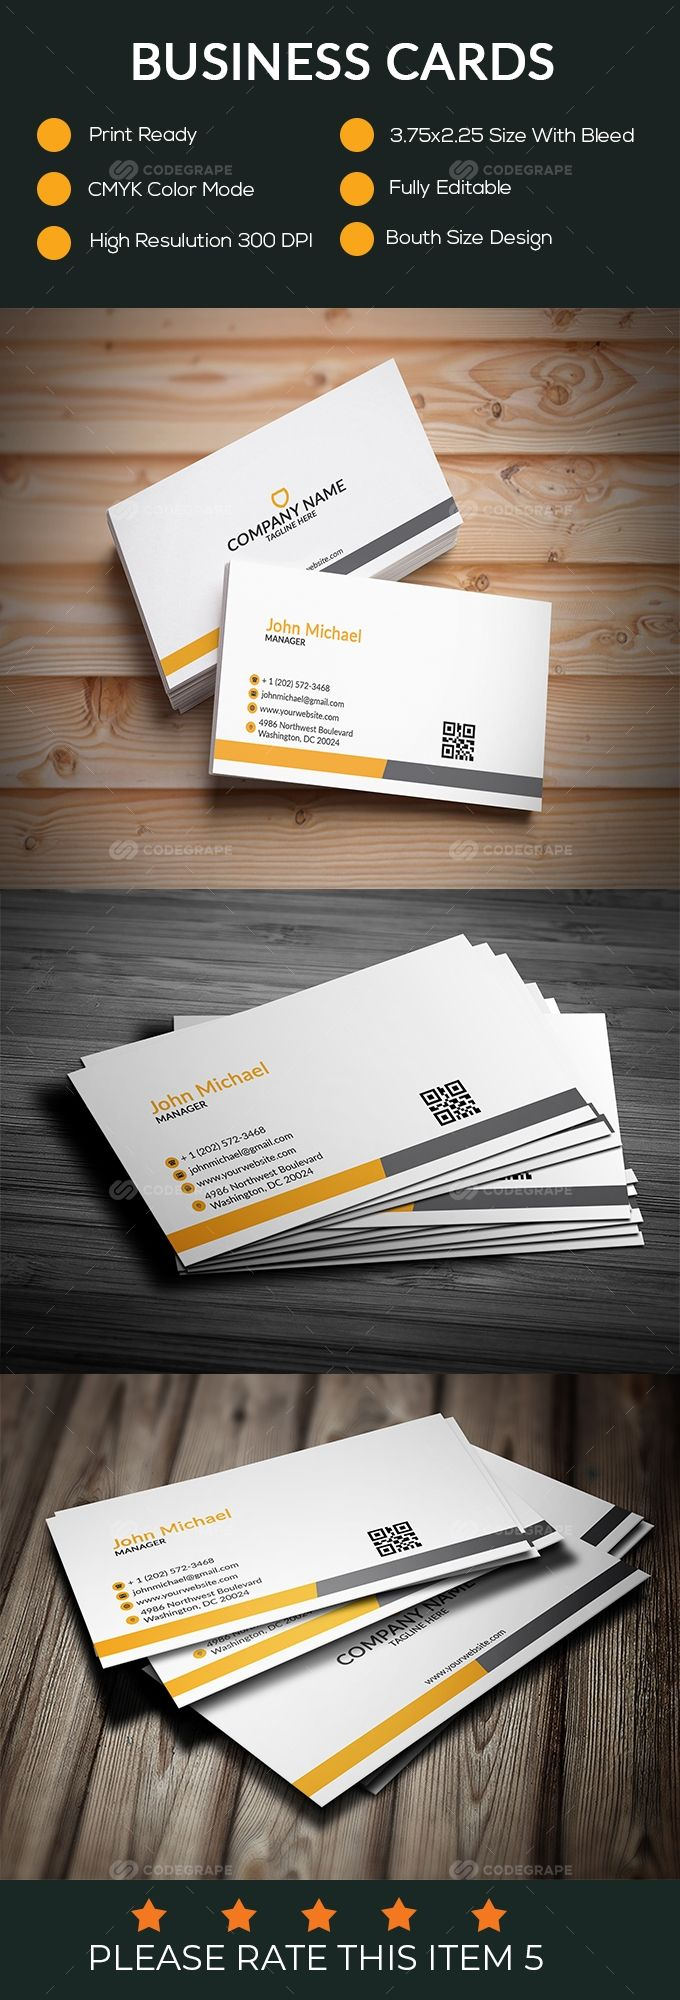 Business Cards Printing Business Cards Business Card Design Business Cards